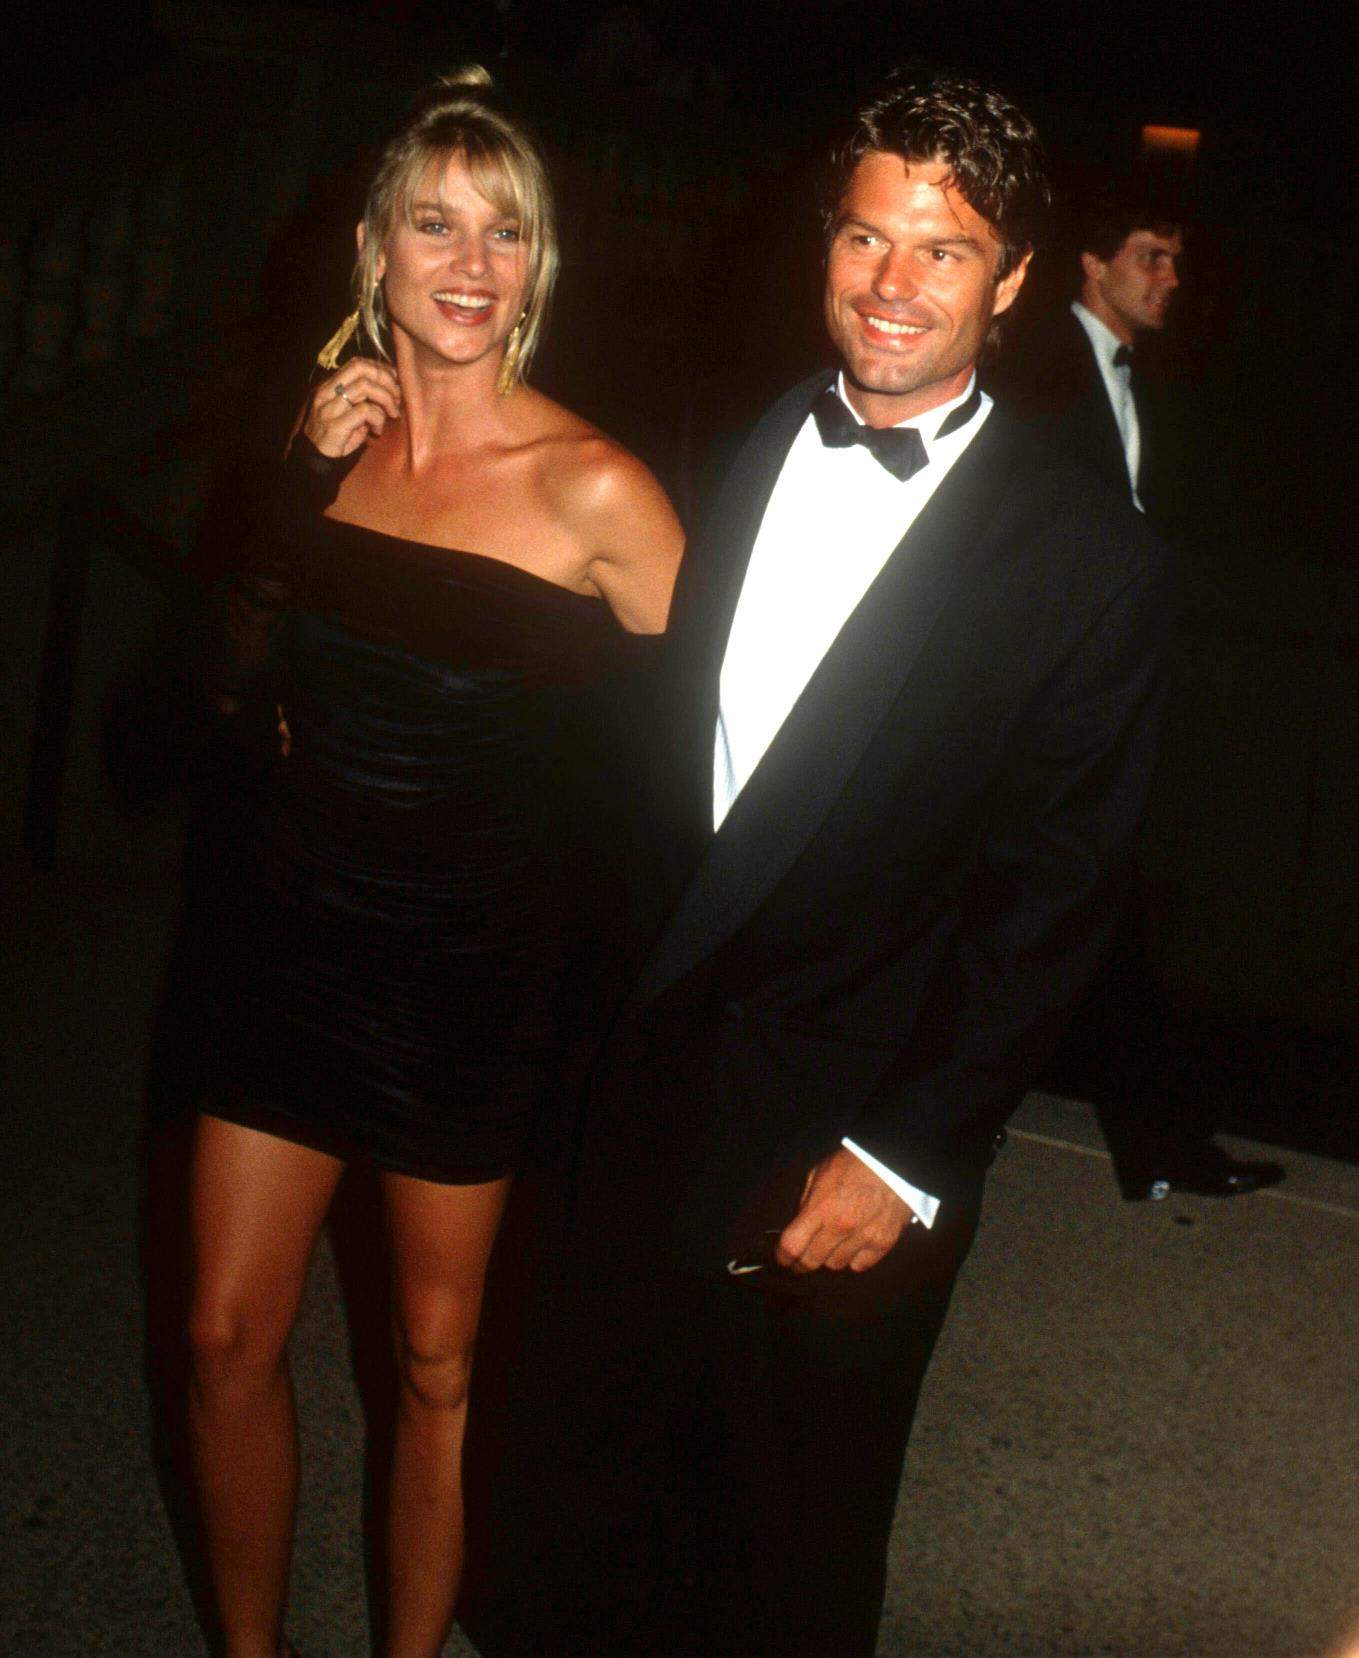 Nicollette Sheridan and actor Harry Hamlin